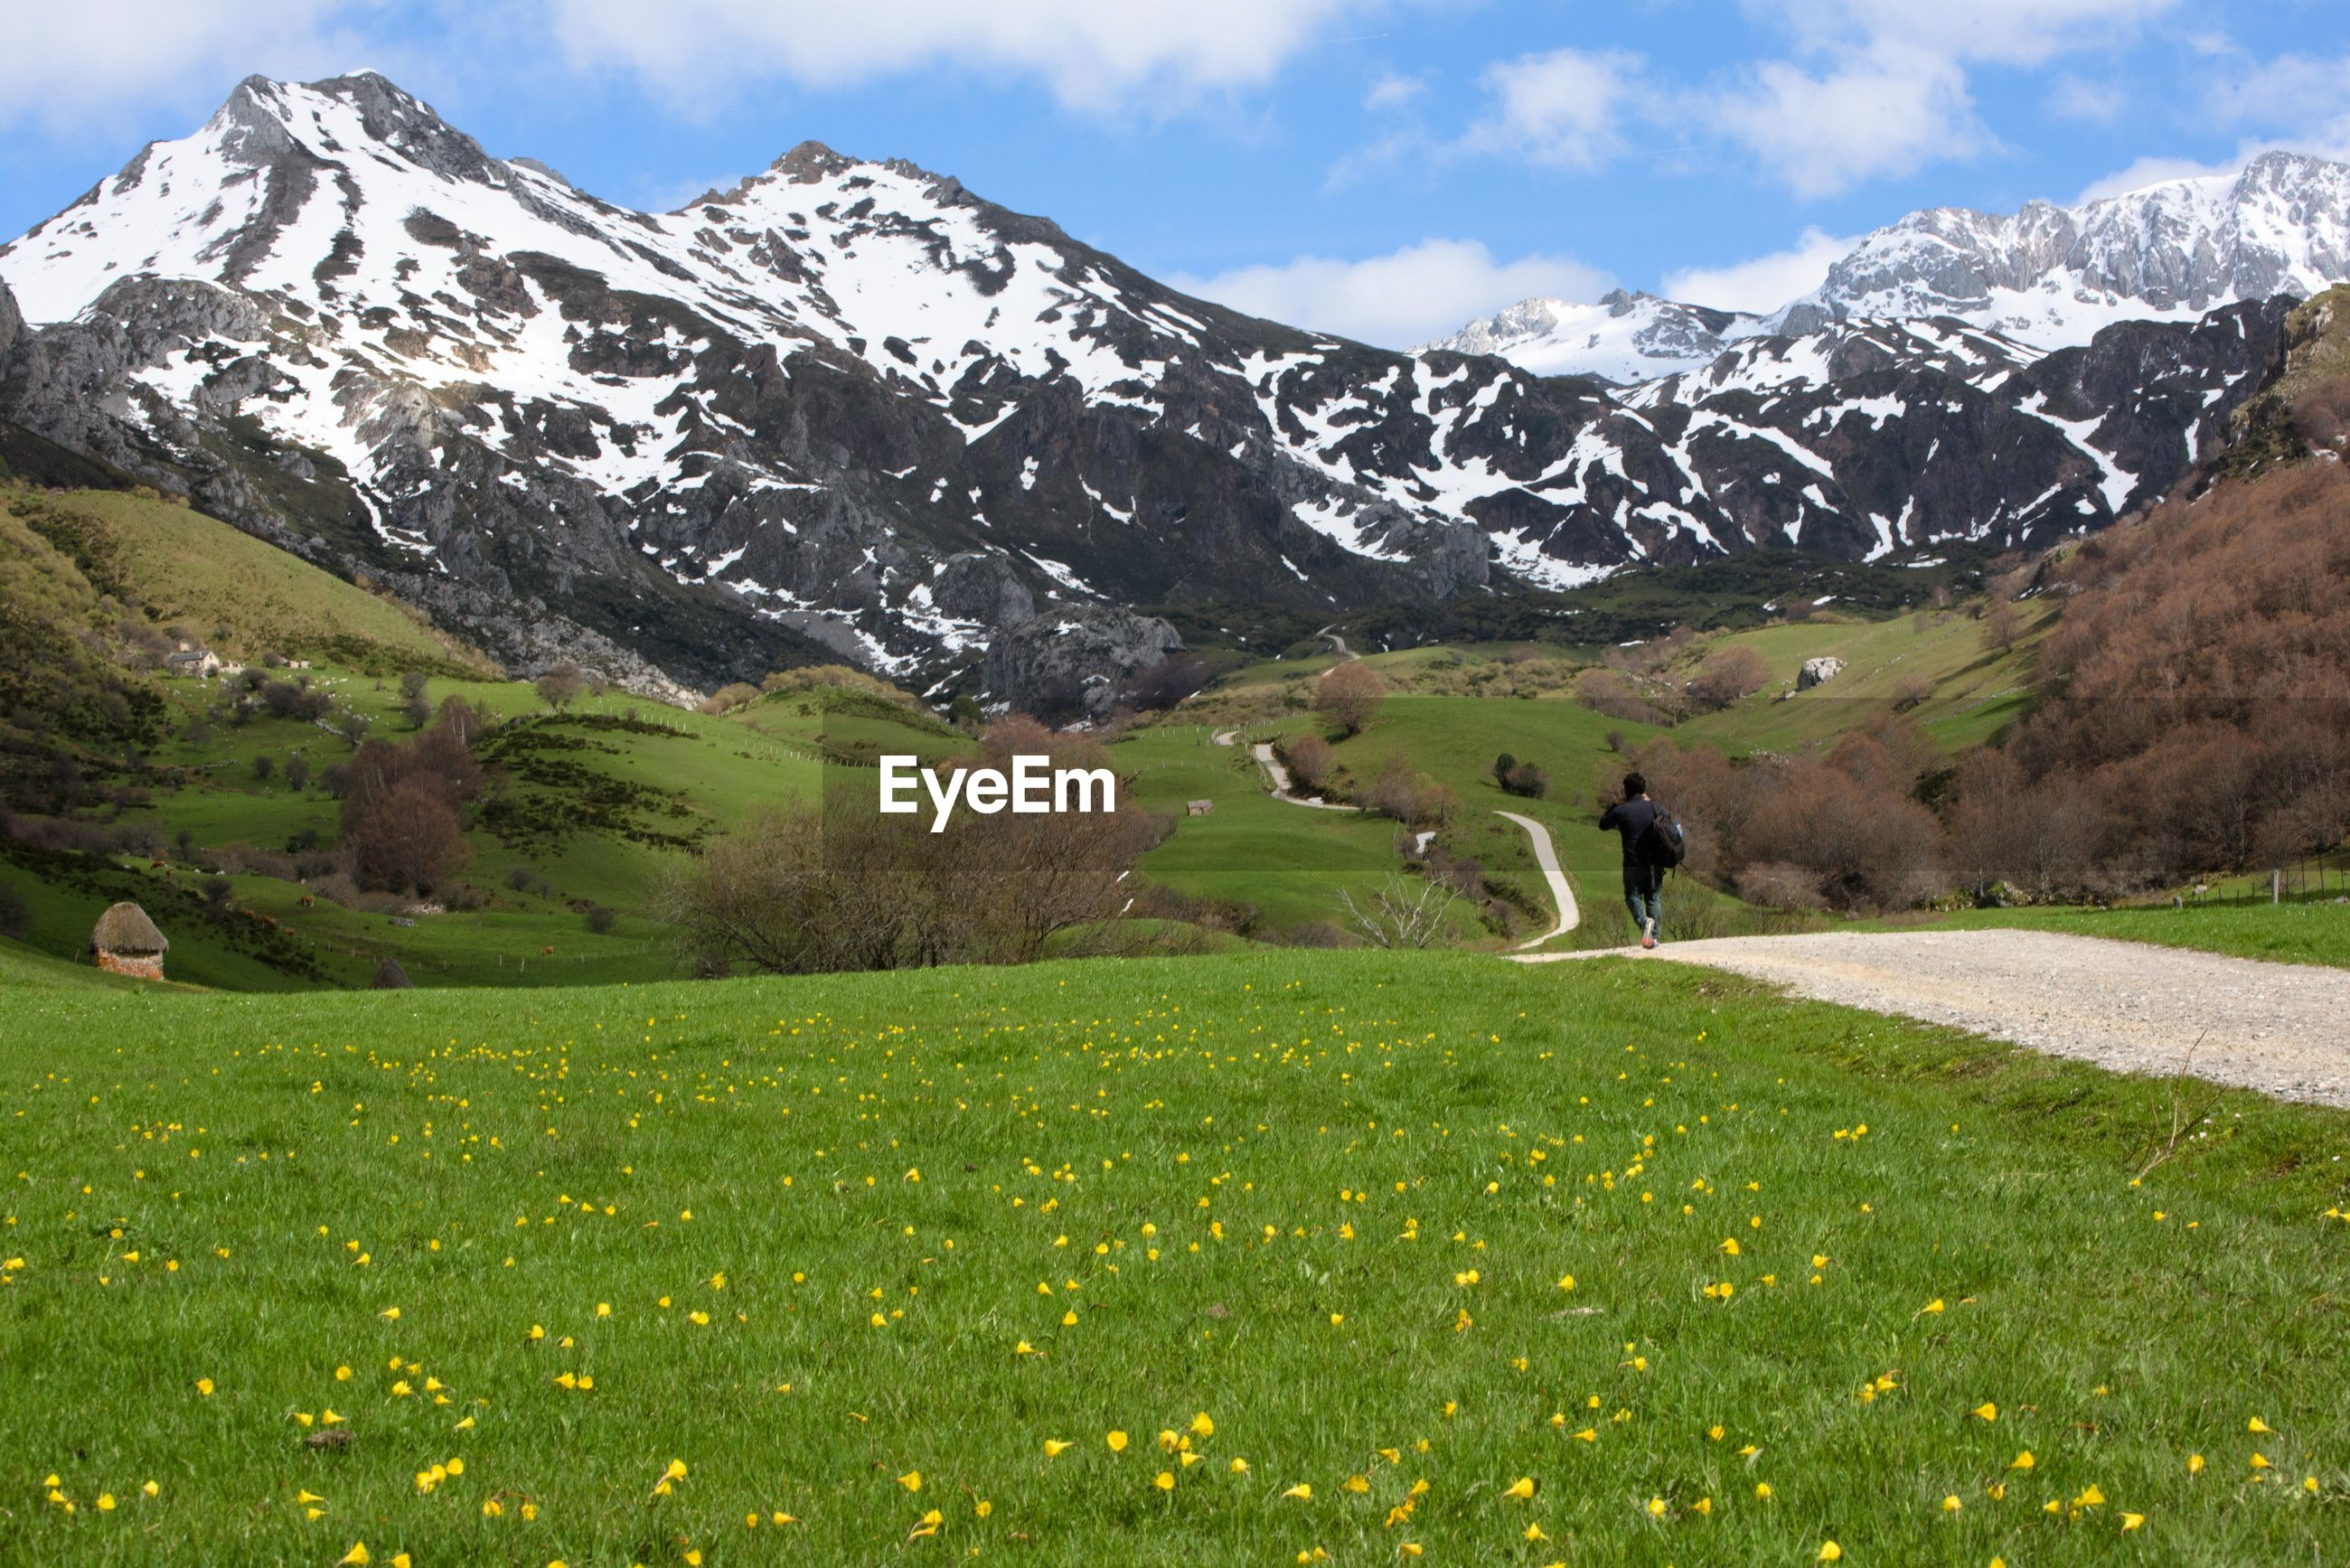 Rear view of man walking on footpath amidst grassy field against mountains